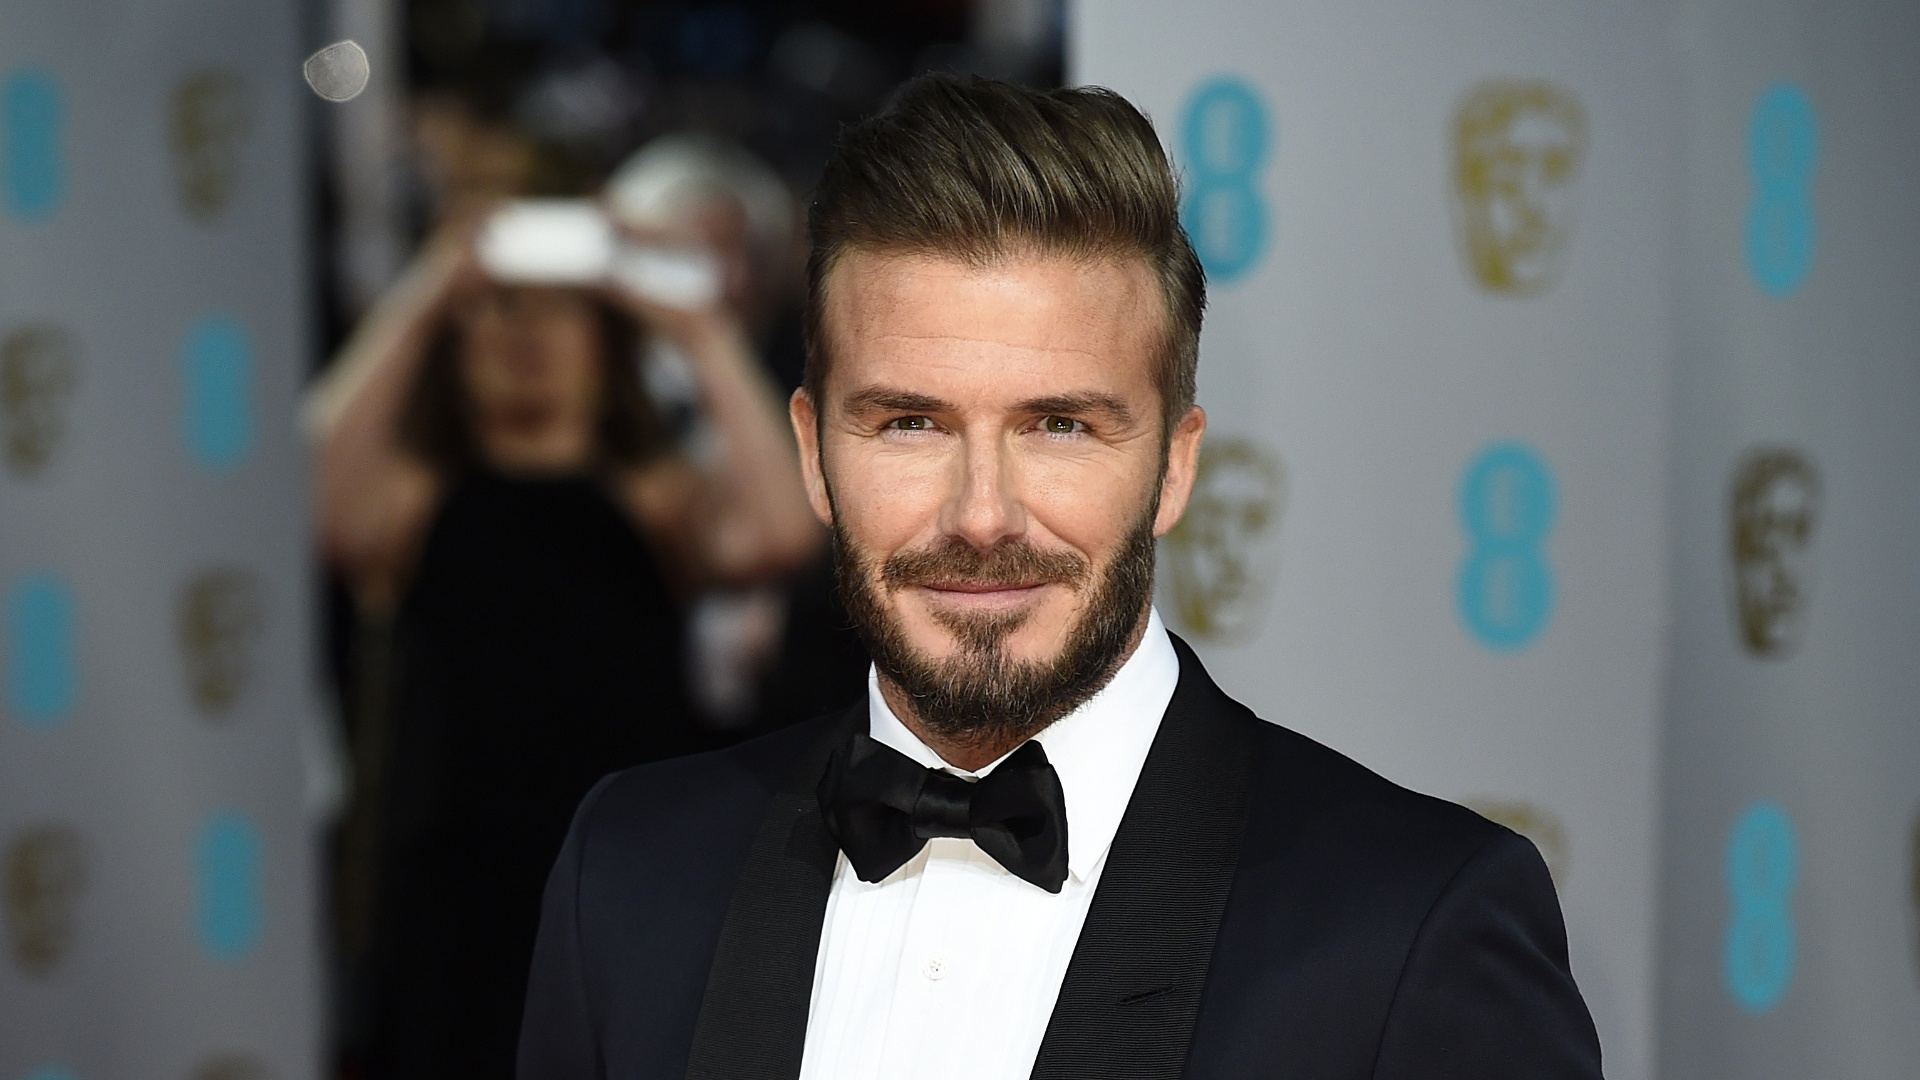 David beckham shines in tom ford at 2015 bafta awards - David beckham ...